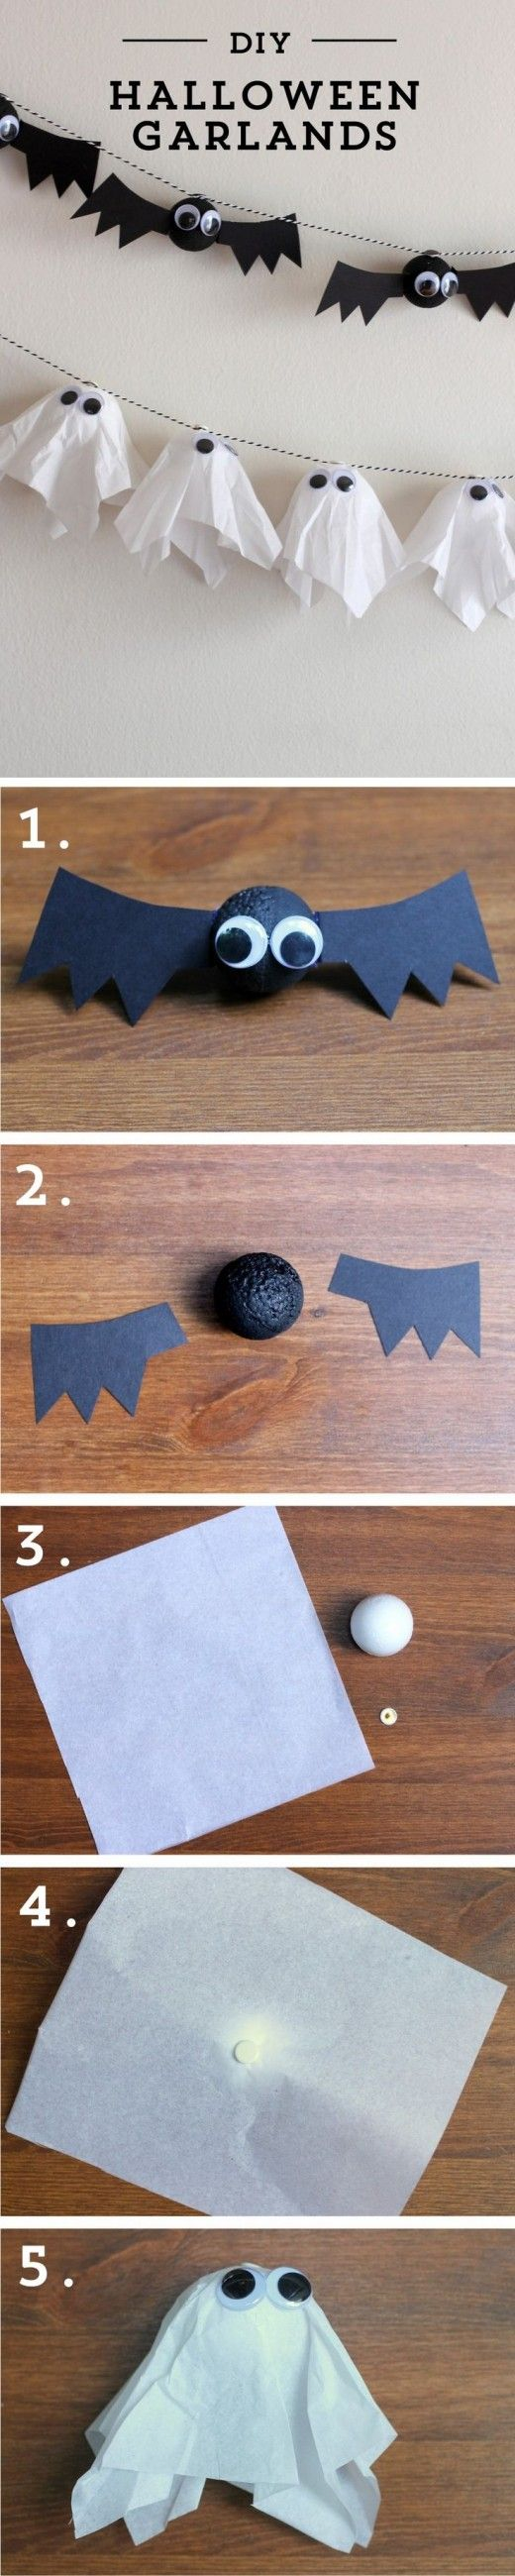 DIY Halloween garland.